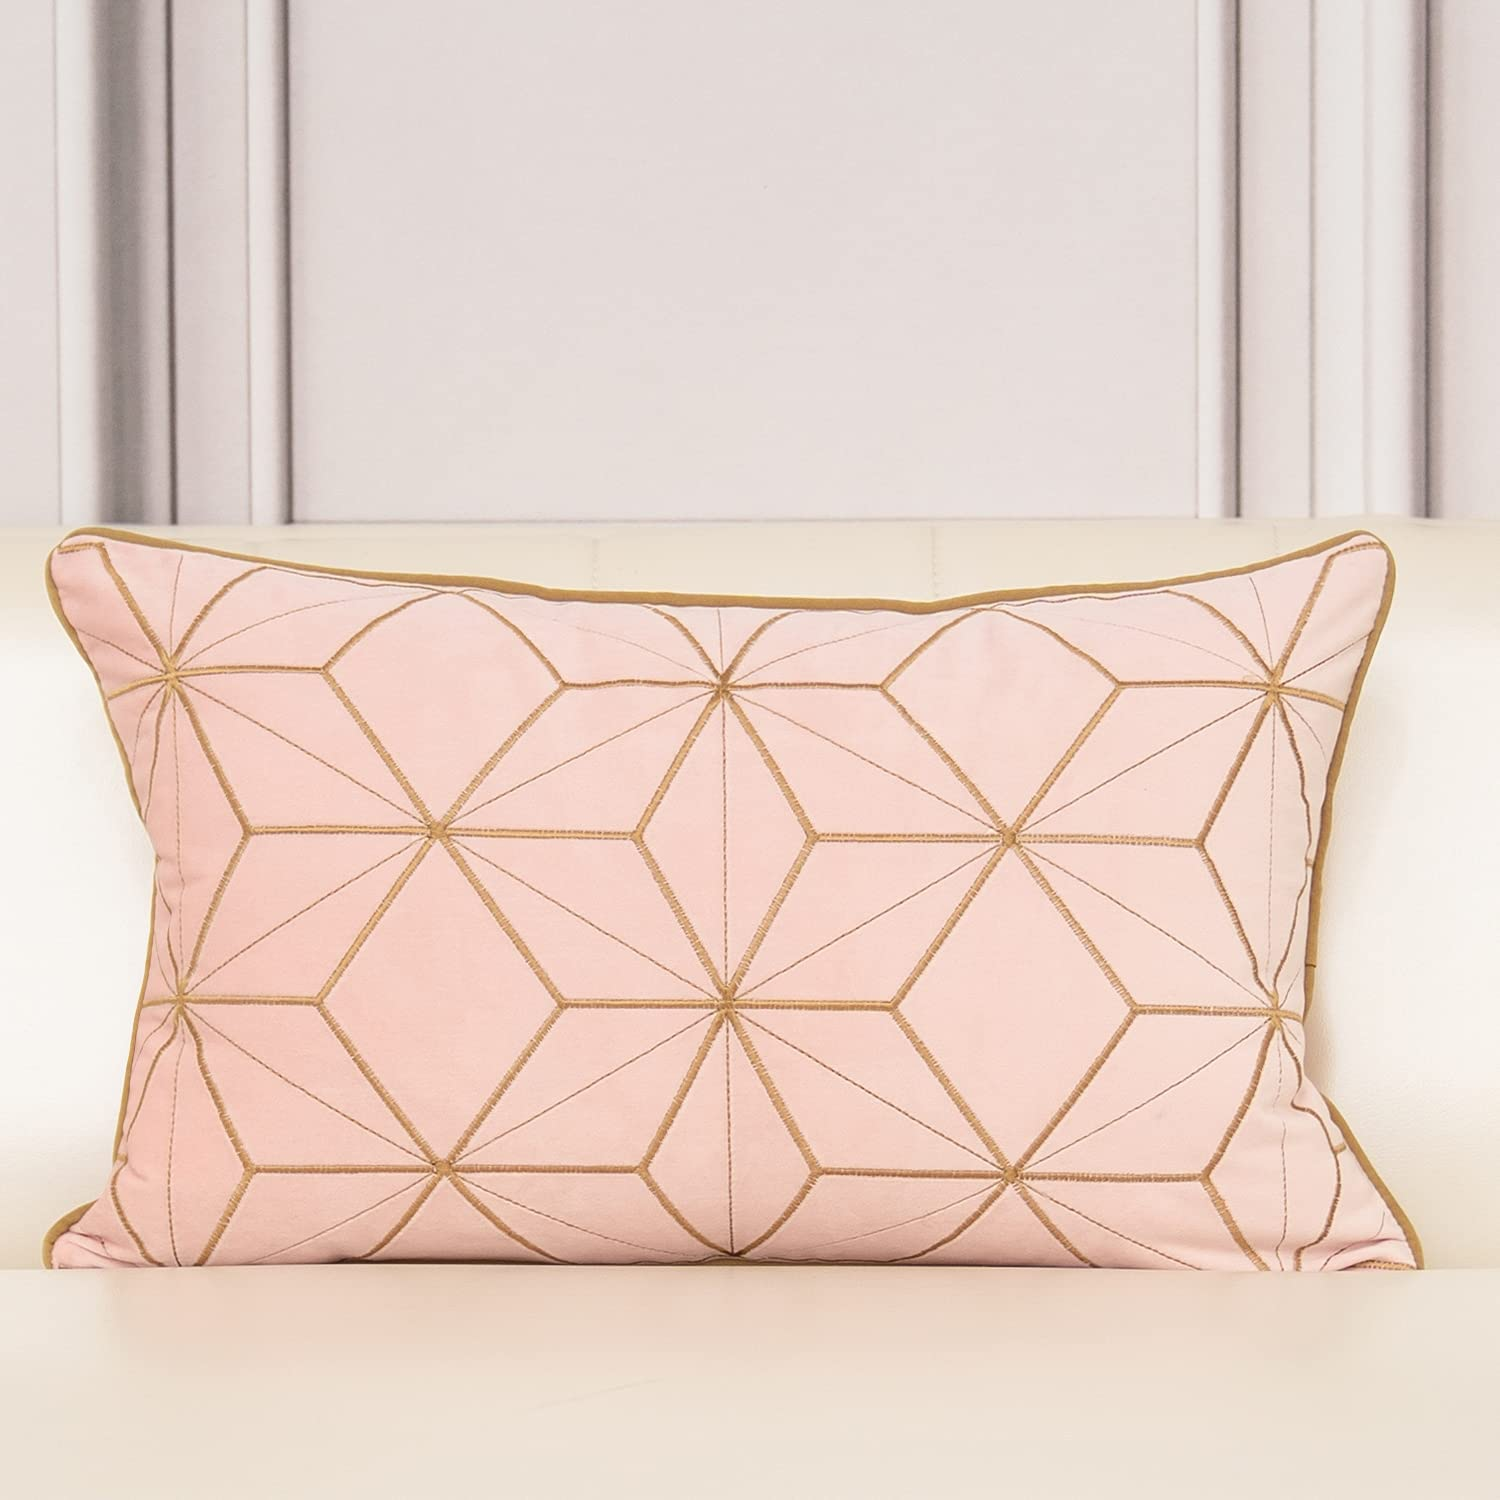 Aeckself 12 x Spasm price 20 Inch Pink Geometric Embroidery Plaid Gold Al sold out. Lines